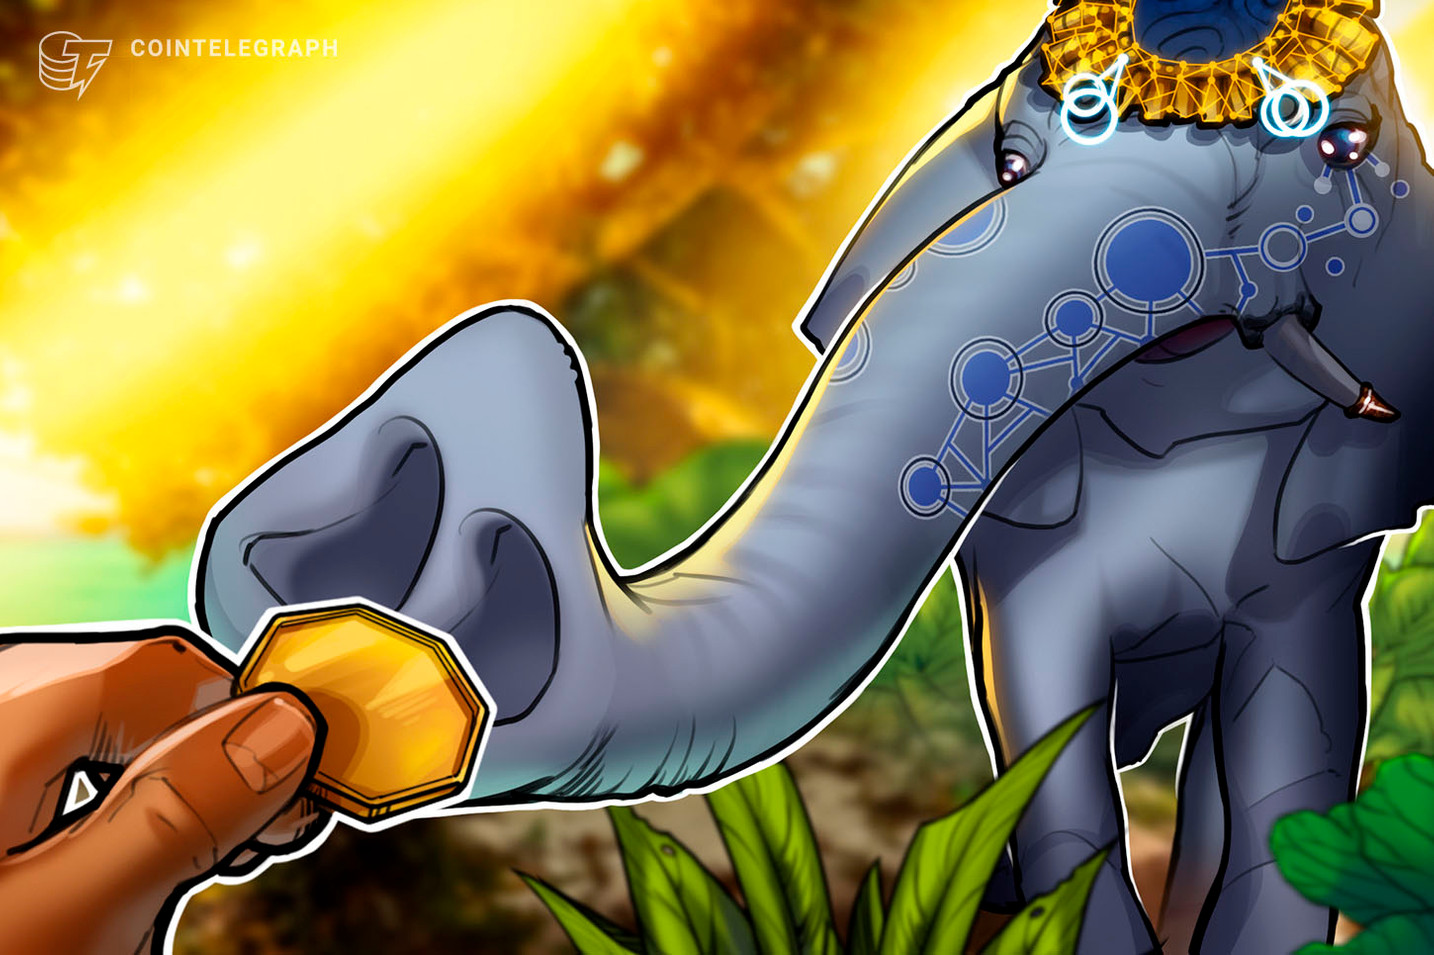 India: Central Bank Report States Crypto Does Not Threaten Financial Stability